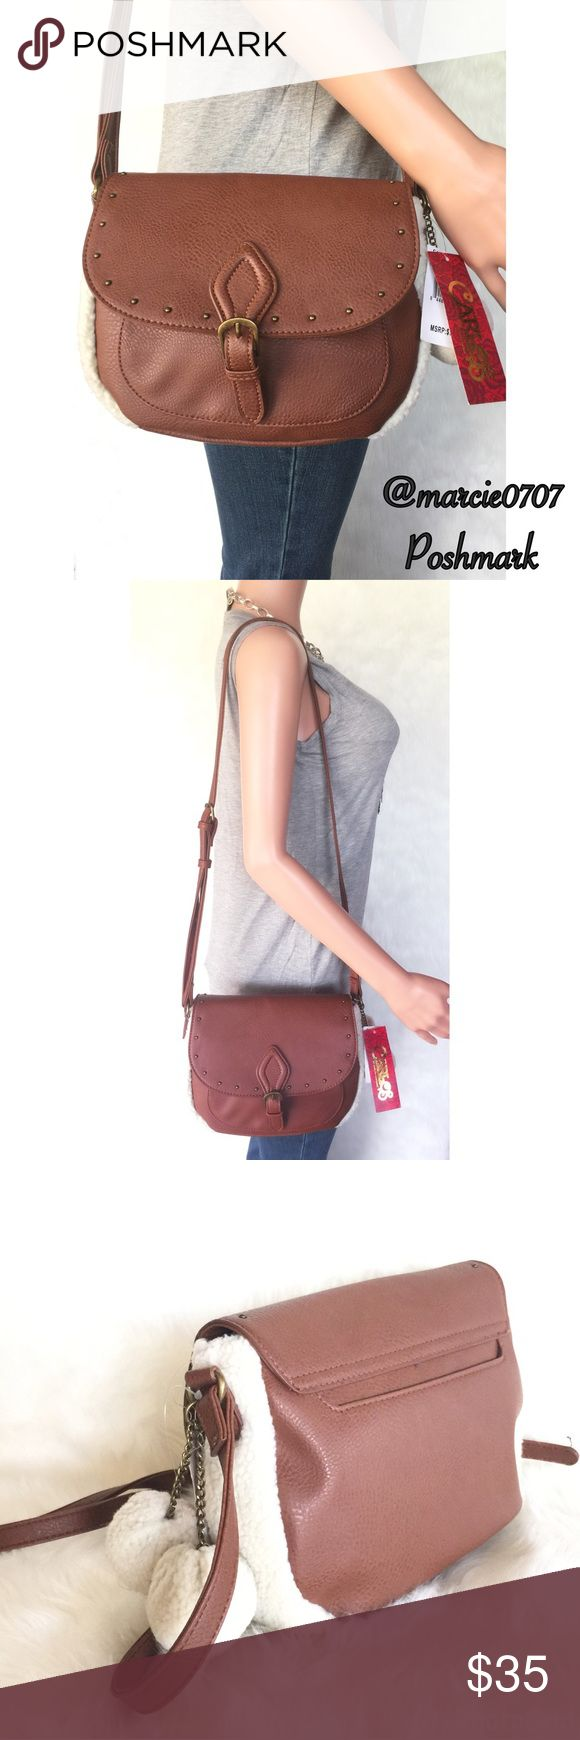 Carlos Santana handbag Carlos Santana Quincy saddle crossbody handbag. Brown color Cognac with cream fluffy material around the outside and cream fluff balls. Has bronze/gold color metal buckle on the front and one on the strap. One open pocket on the back. One zipper pocket on the inside and two pockets on the other side. Carlos Santana Bags Crossbody Bags